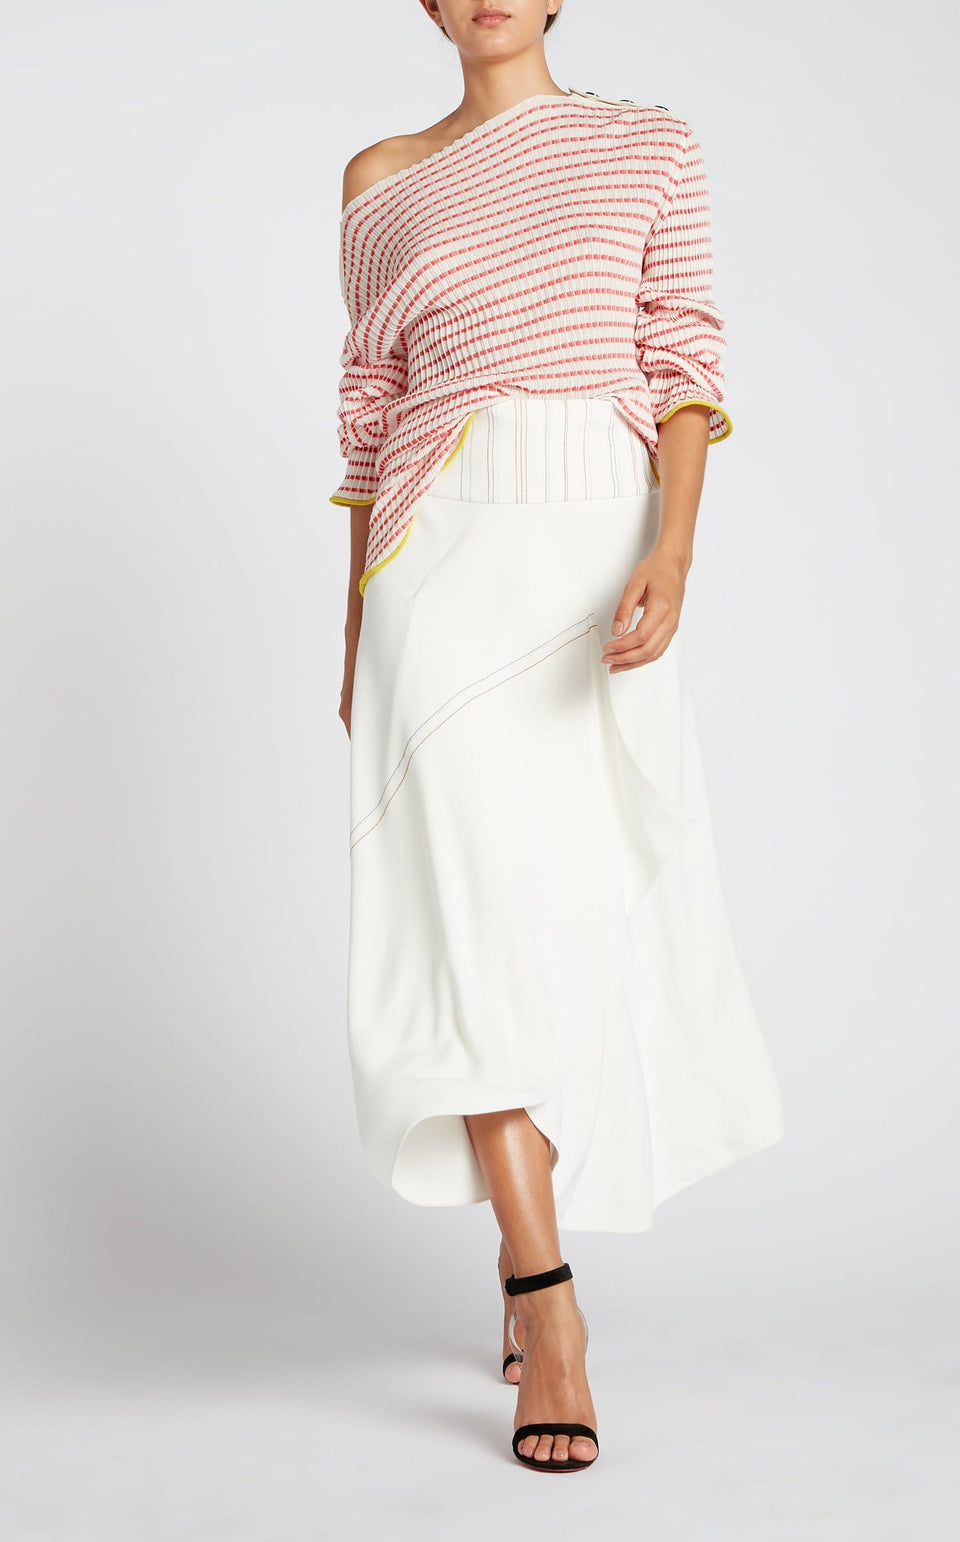 Edlin Top in White from Roland Mouret